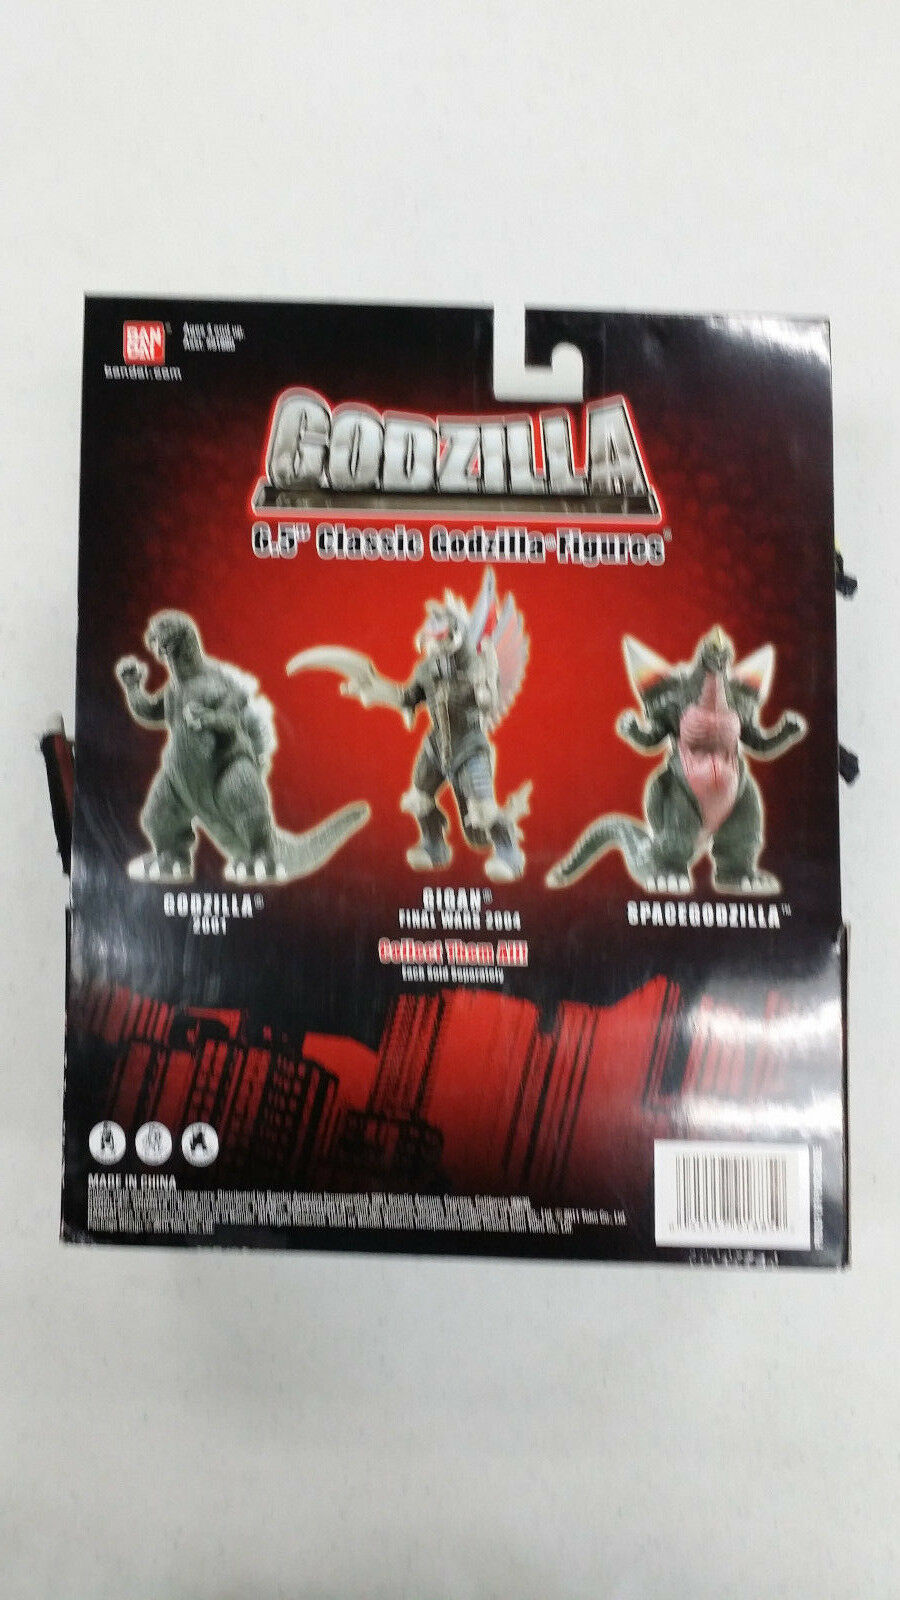 Godzilla 6.5 inch Action Wars Figure - Space Godzilla Final Wars Action 01dfd5